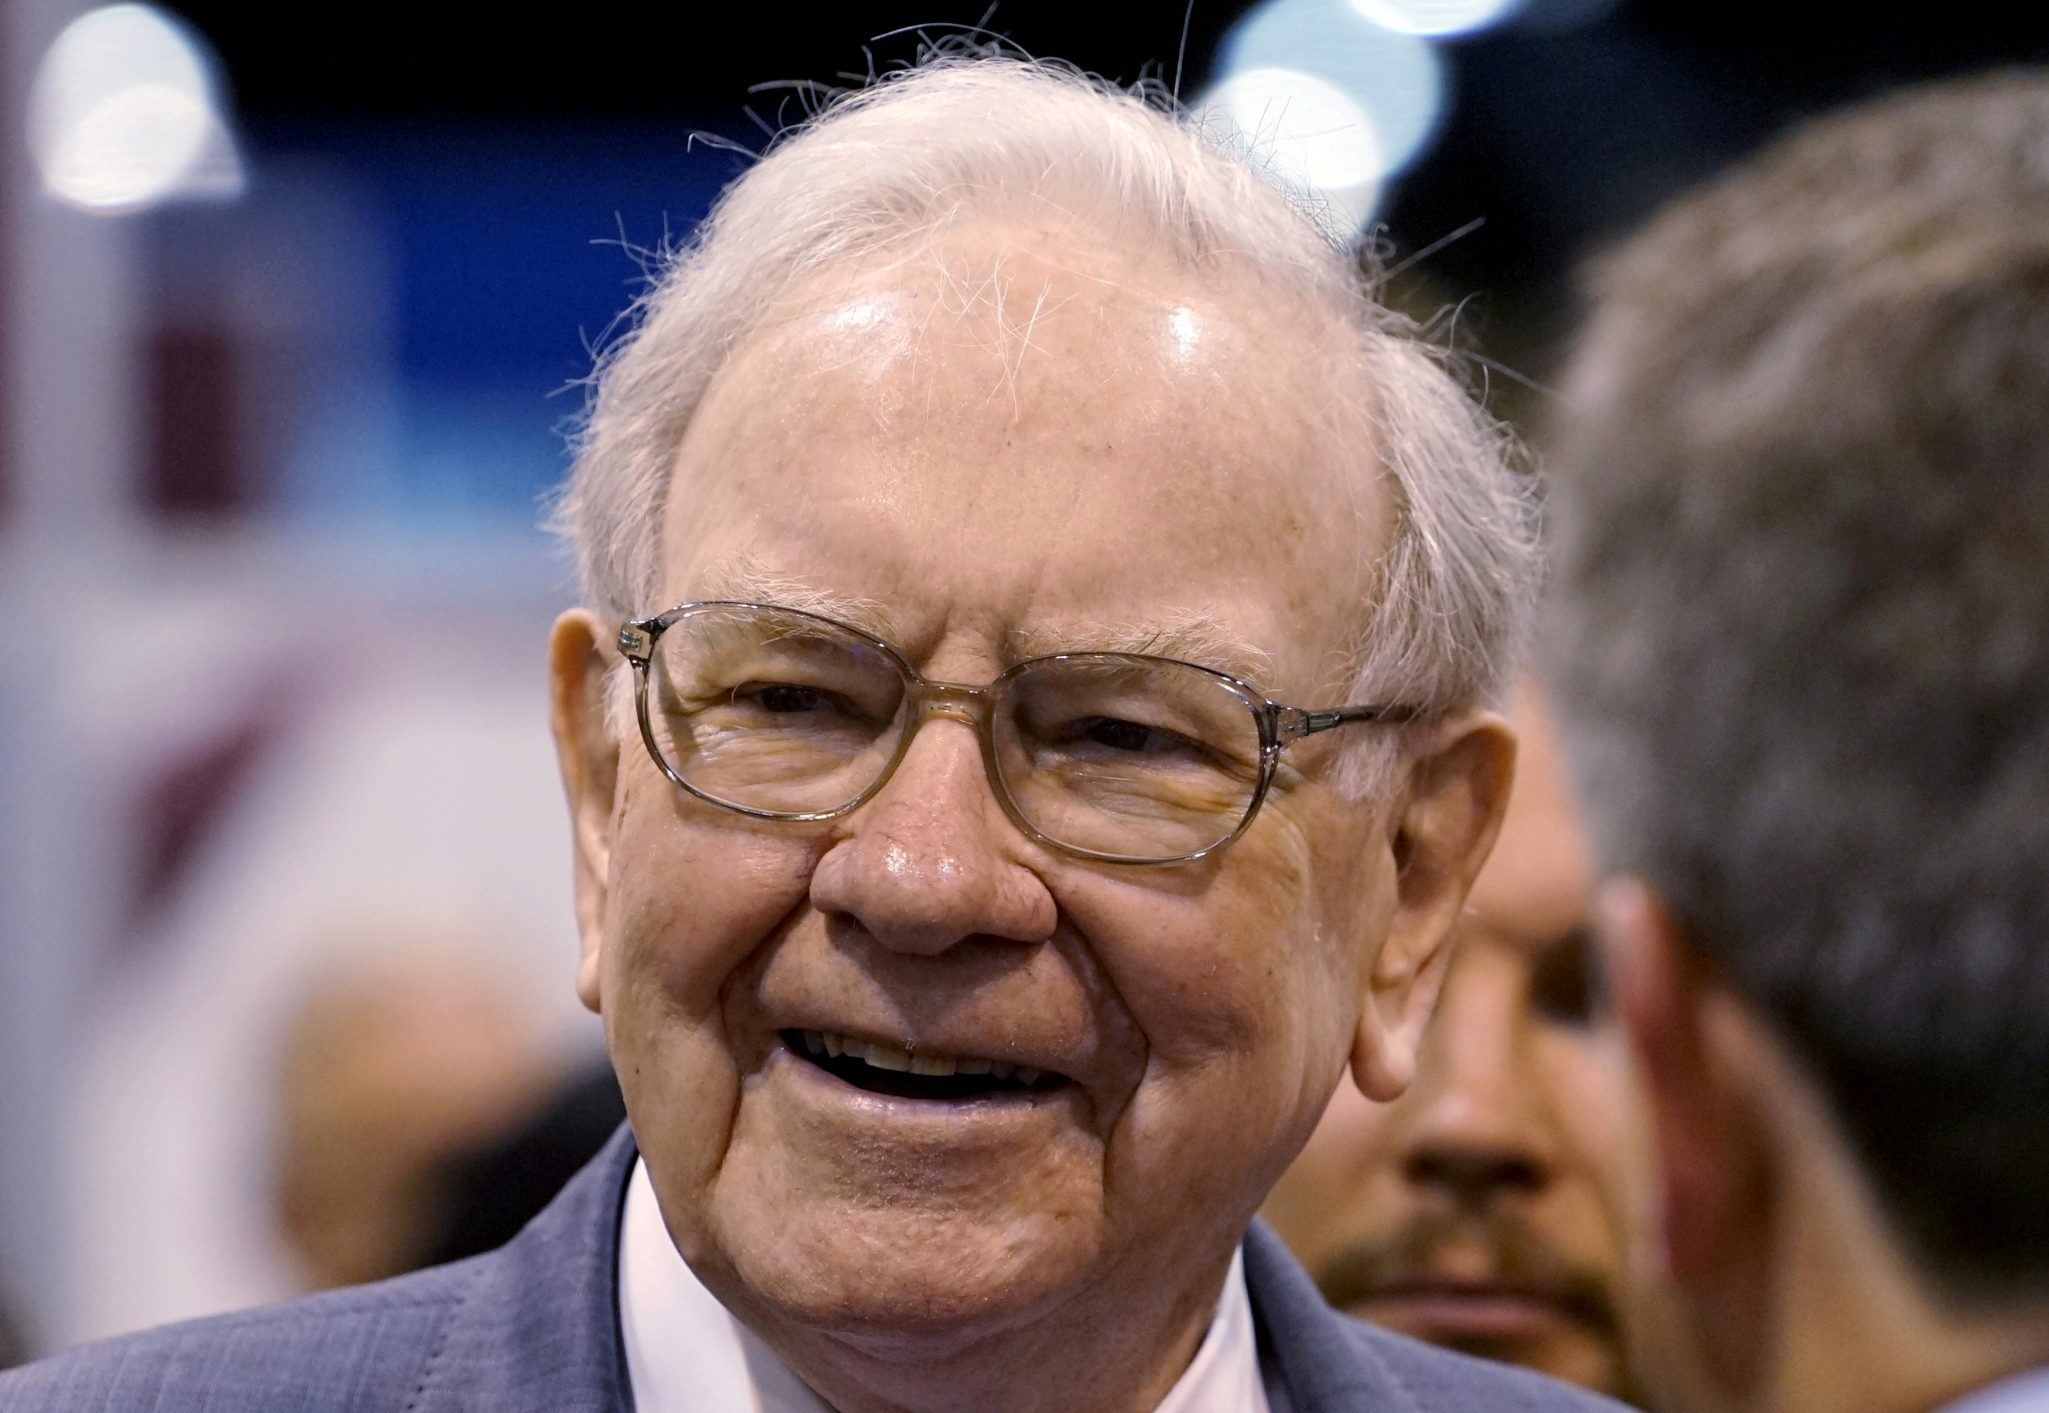 file photo berkshire hathaway ceo warren buffett talks to reporters prior to the berkshire annual meeting in omaha nebraska us on may 2 2015